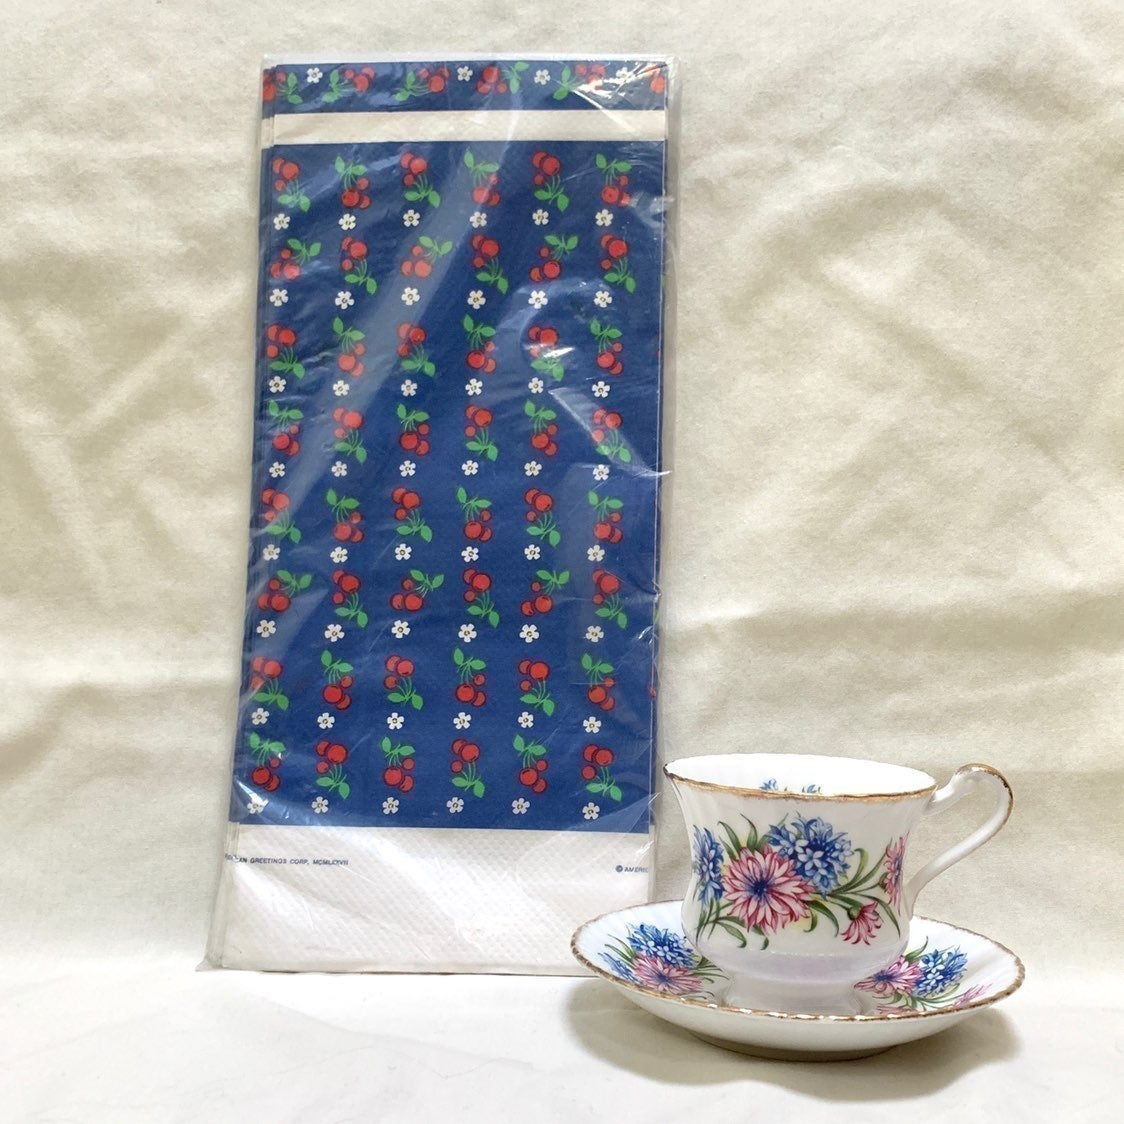 Vintage 1977 blue tablecover w/ cherries